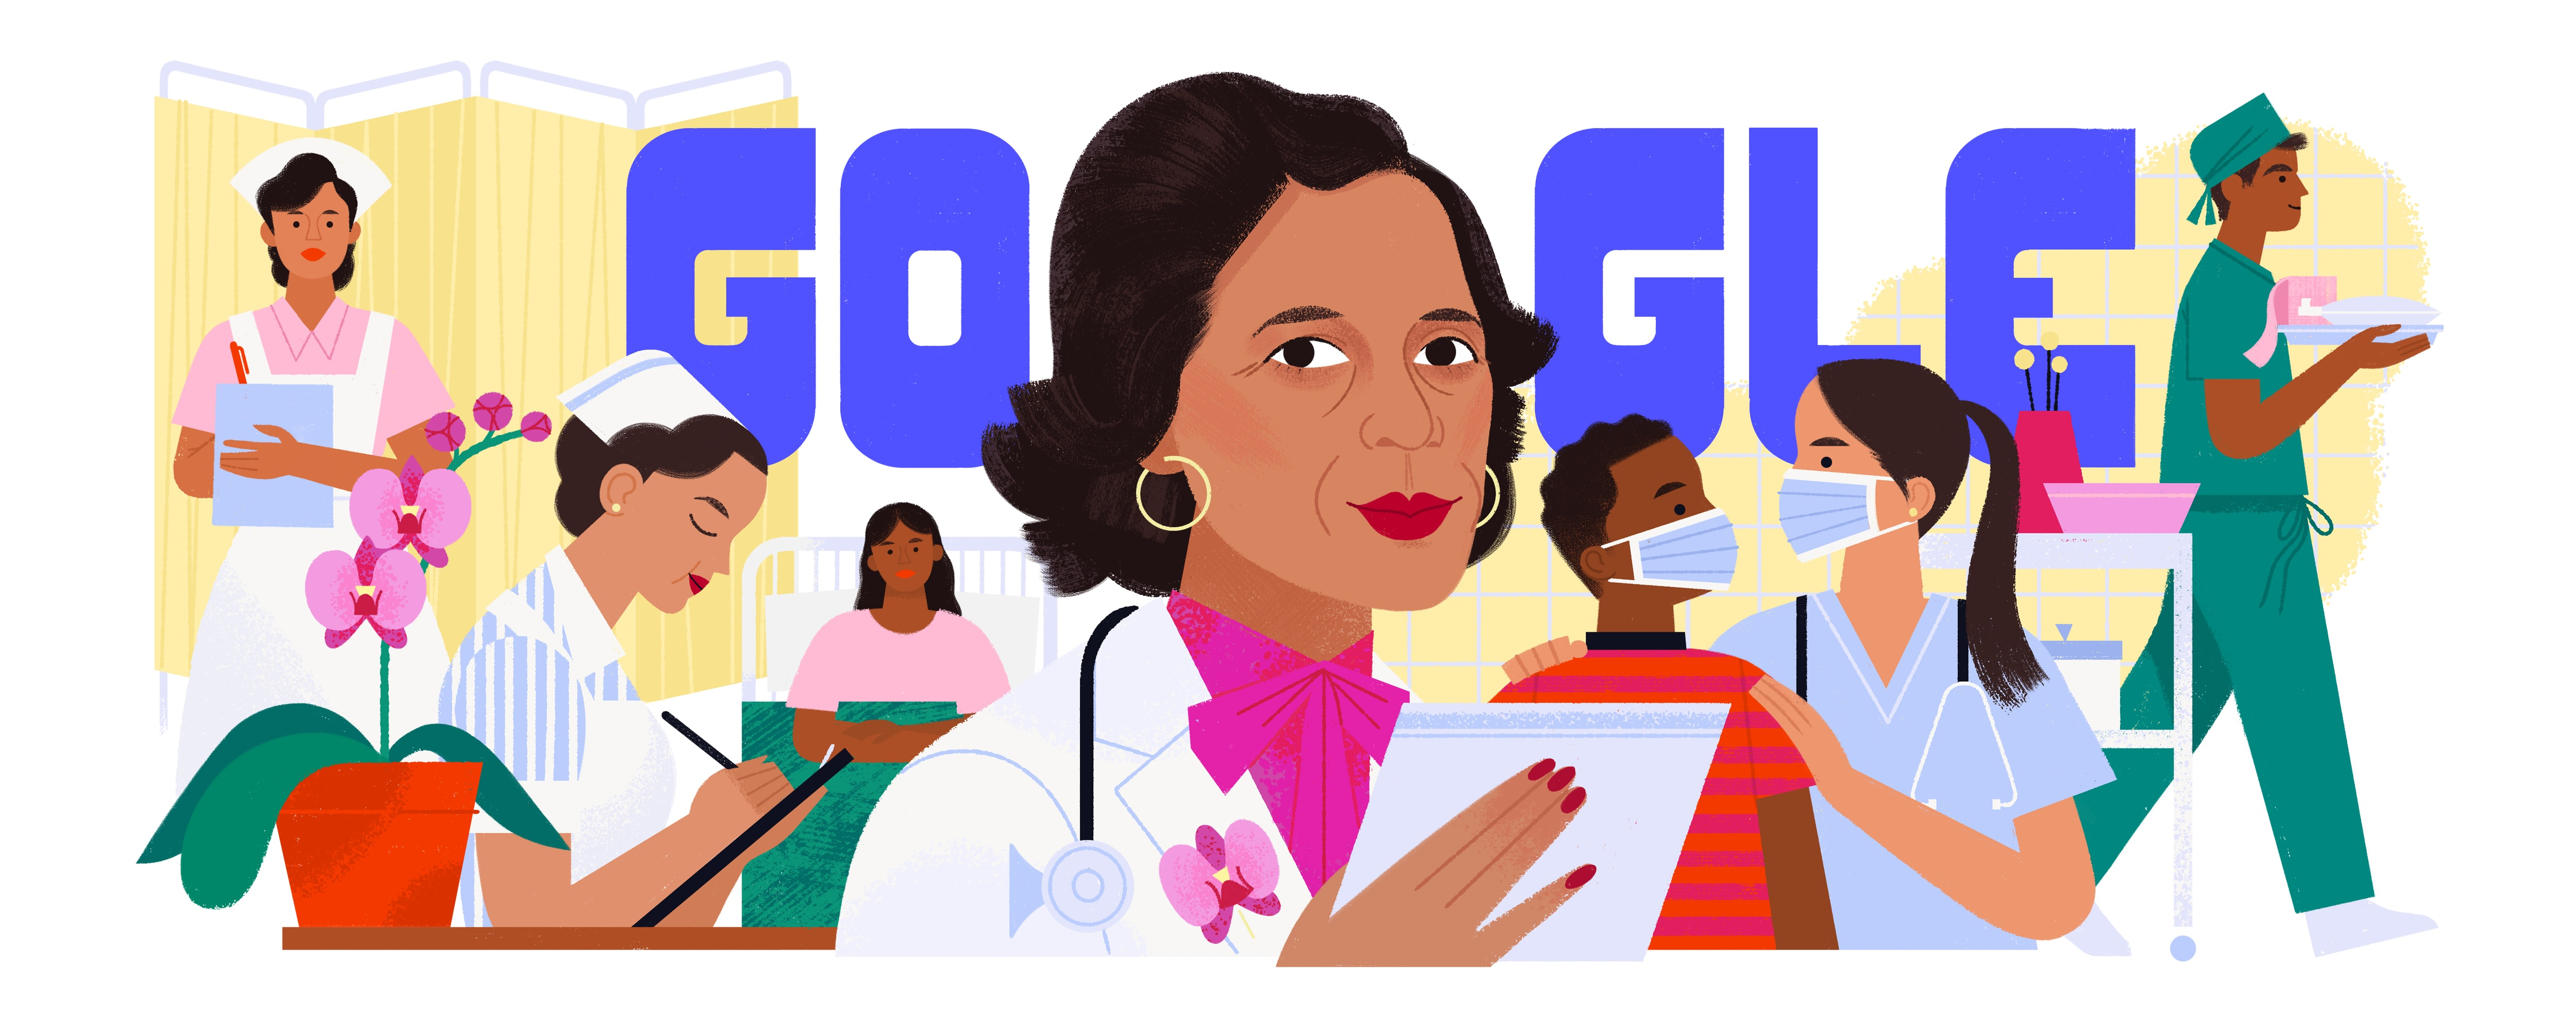 google-doodle-murillo-rohde-2021